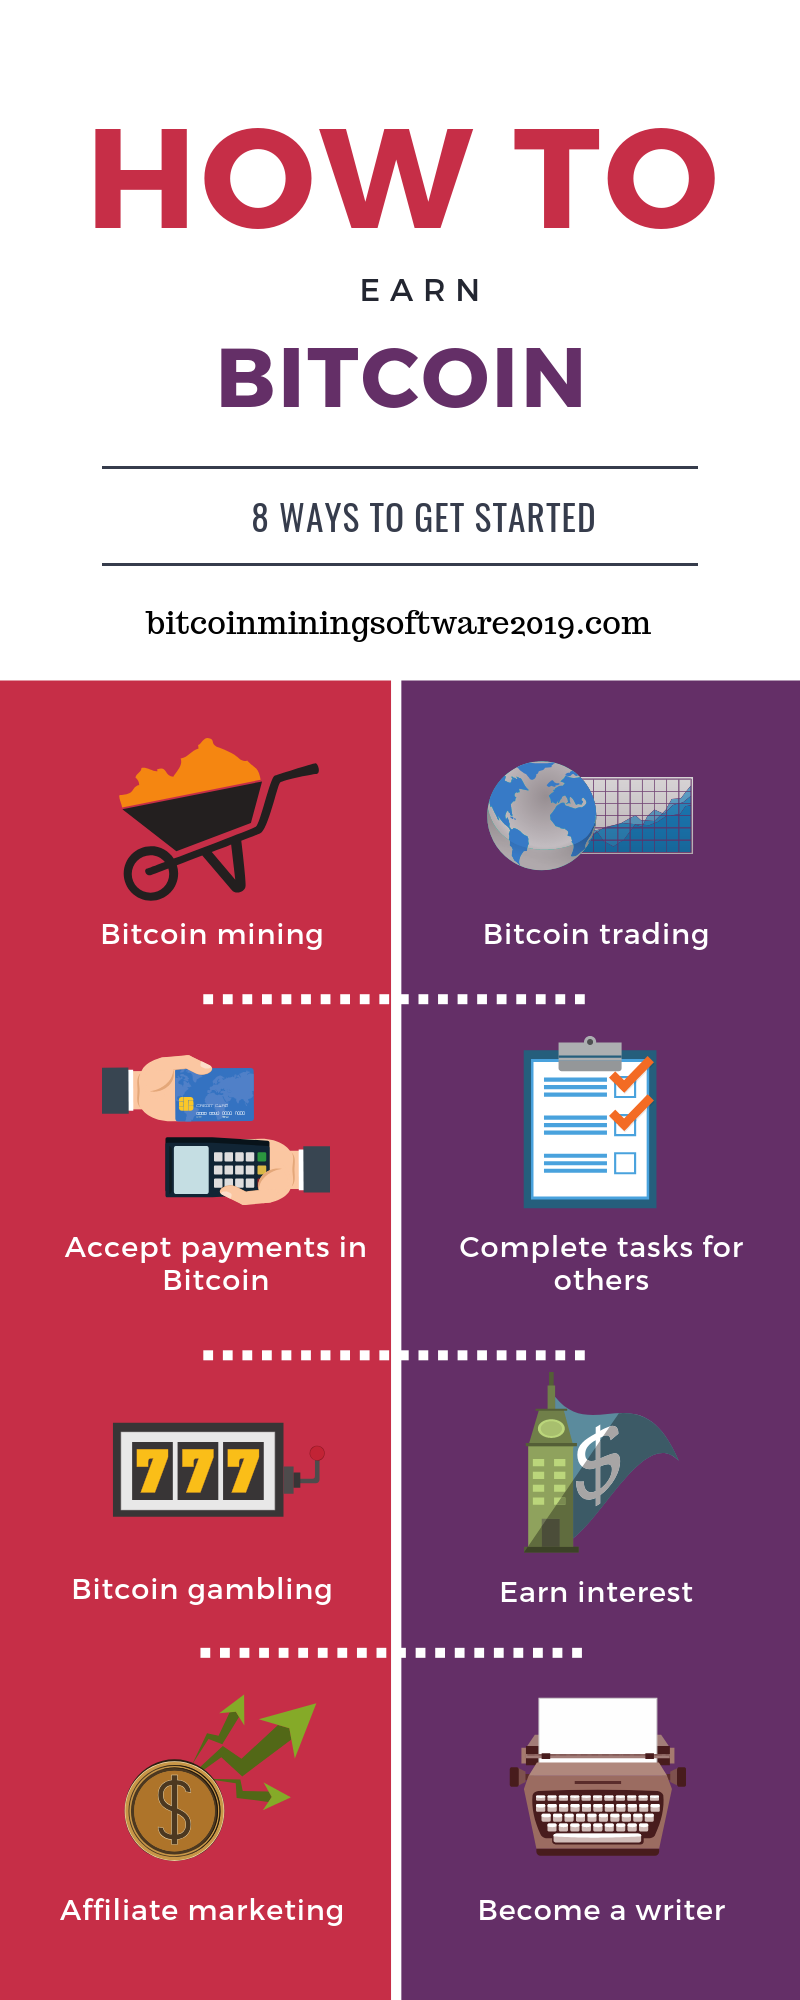 How to earn Bitcoin